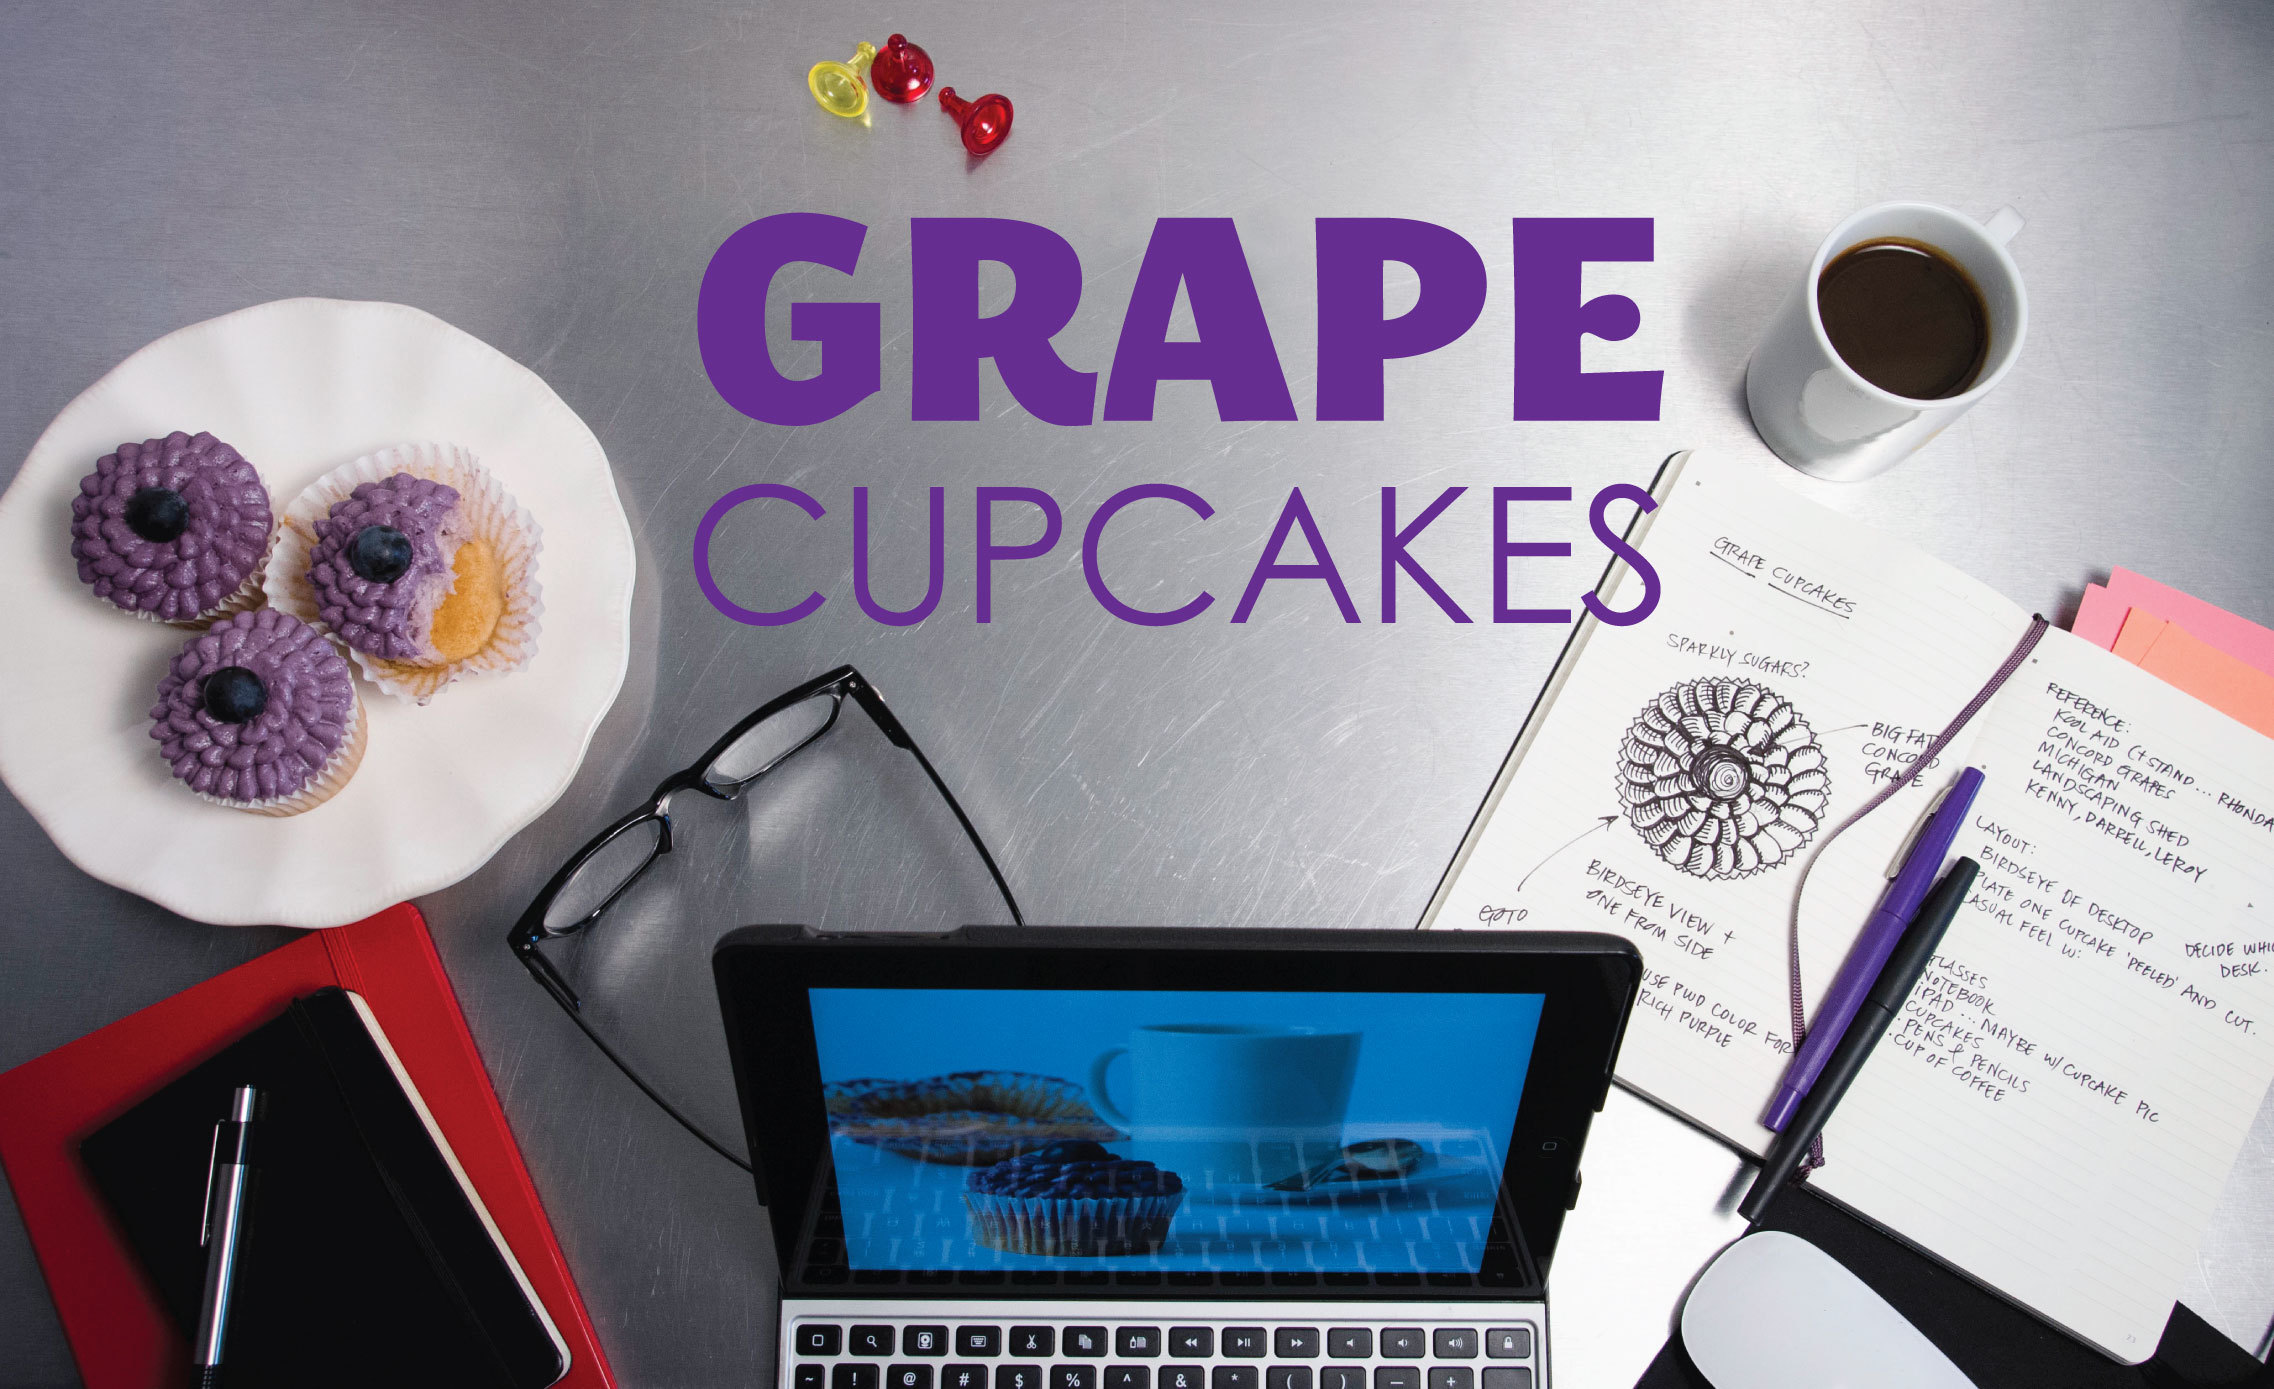 Grape cupcakes from Sam Henderson of Today's Nest.